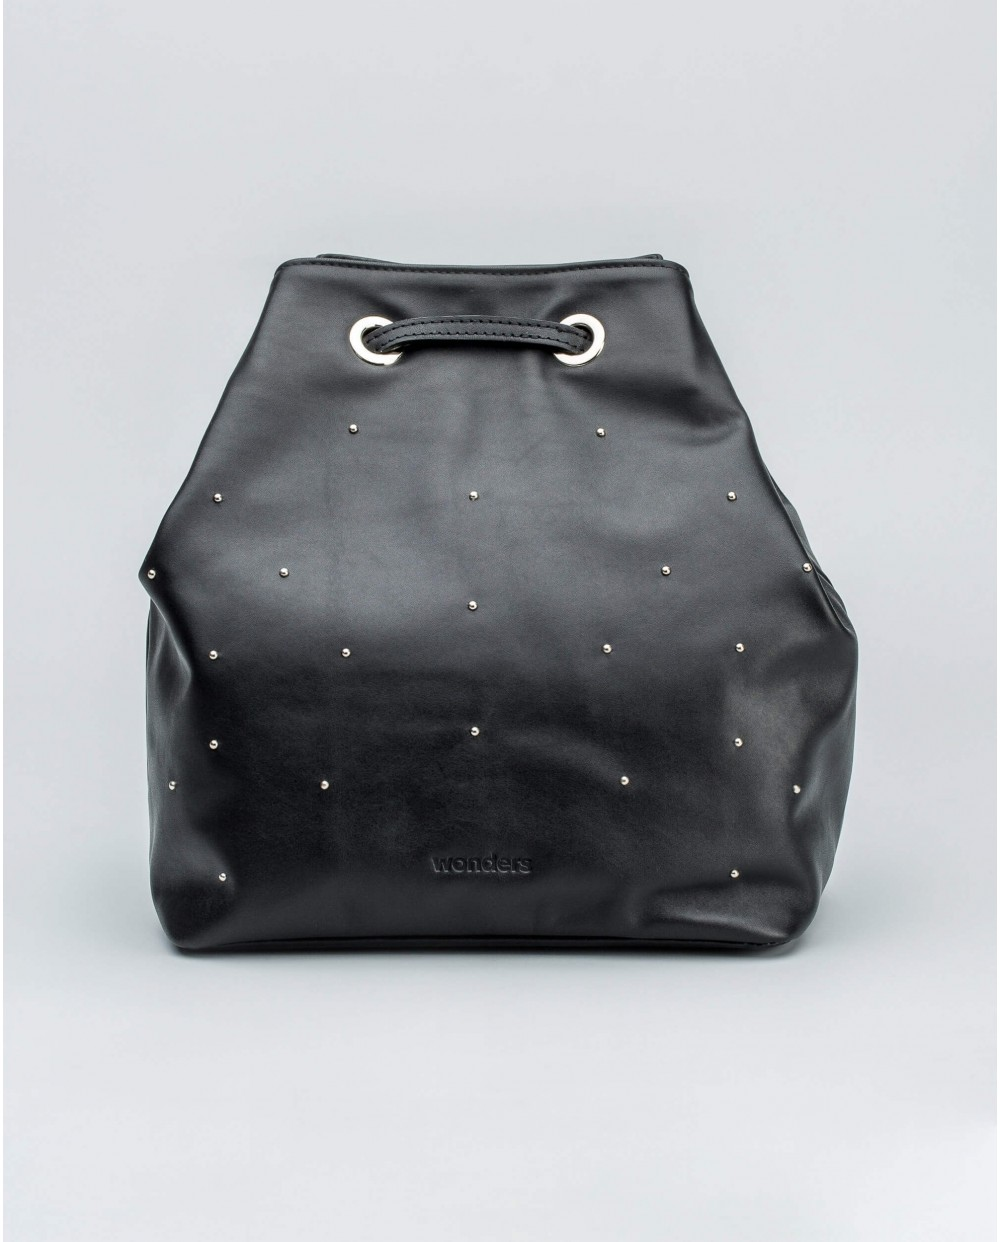 Wonders-Bags-Leather backpack with metallic detail